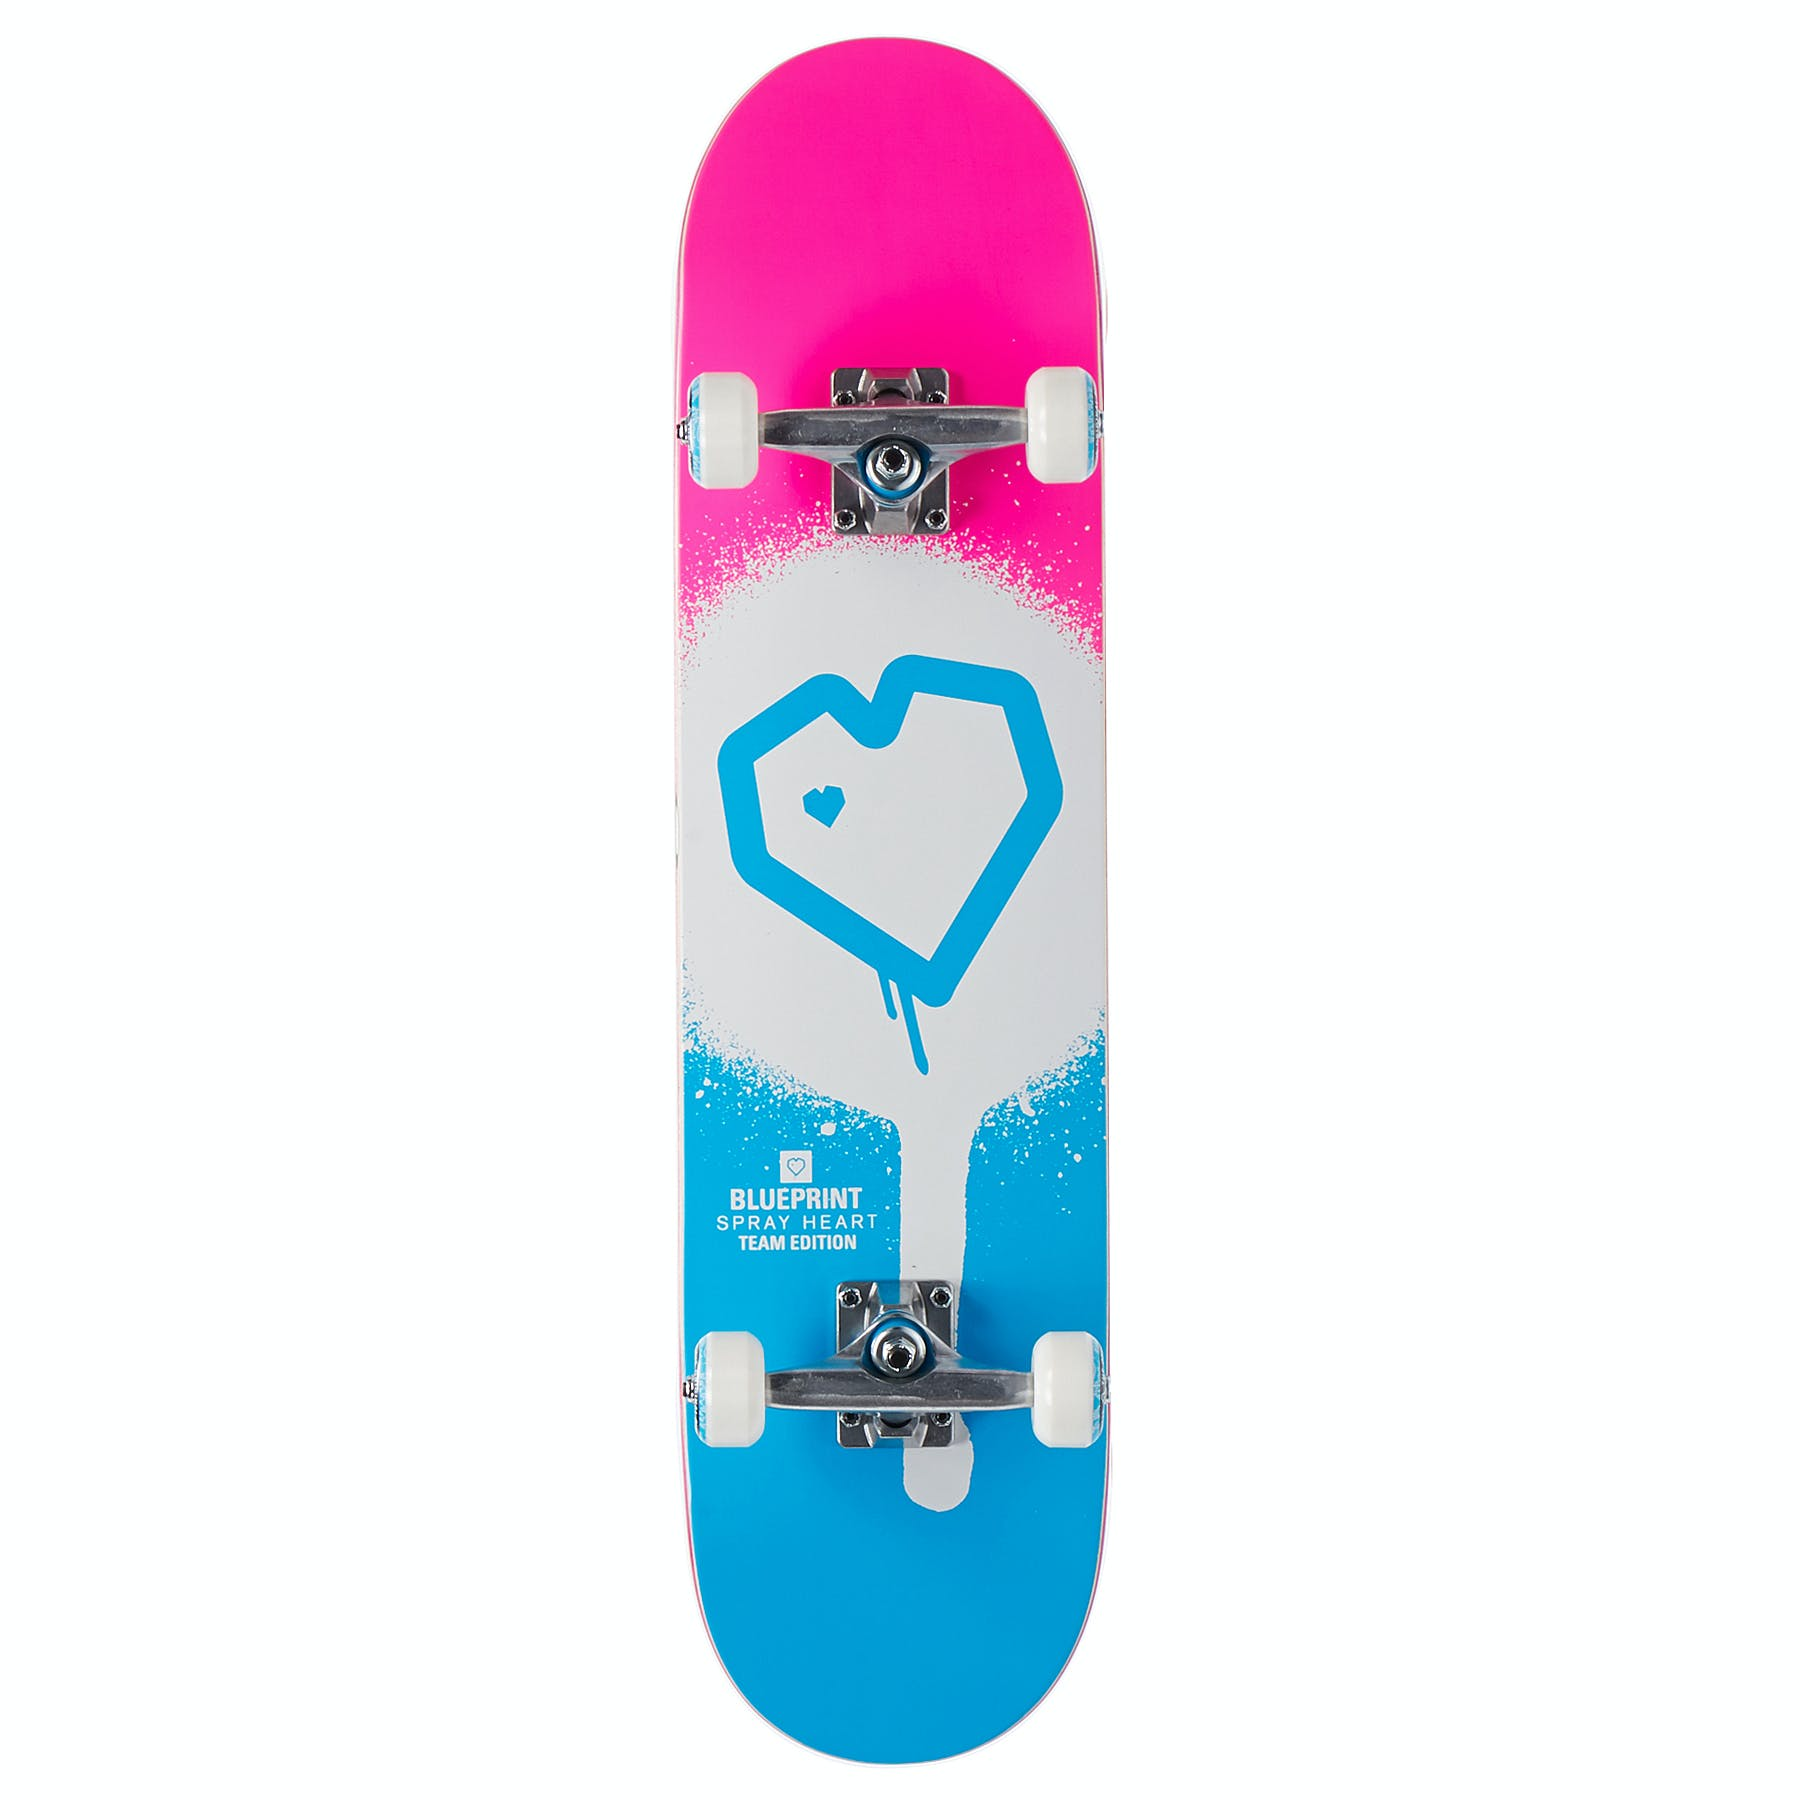 Blueprint Spray Heart Kids Skateboard - Free Delivery options on All Orders  from Surfdome UK